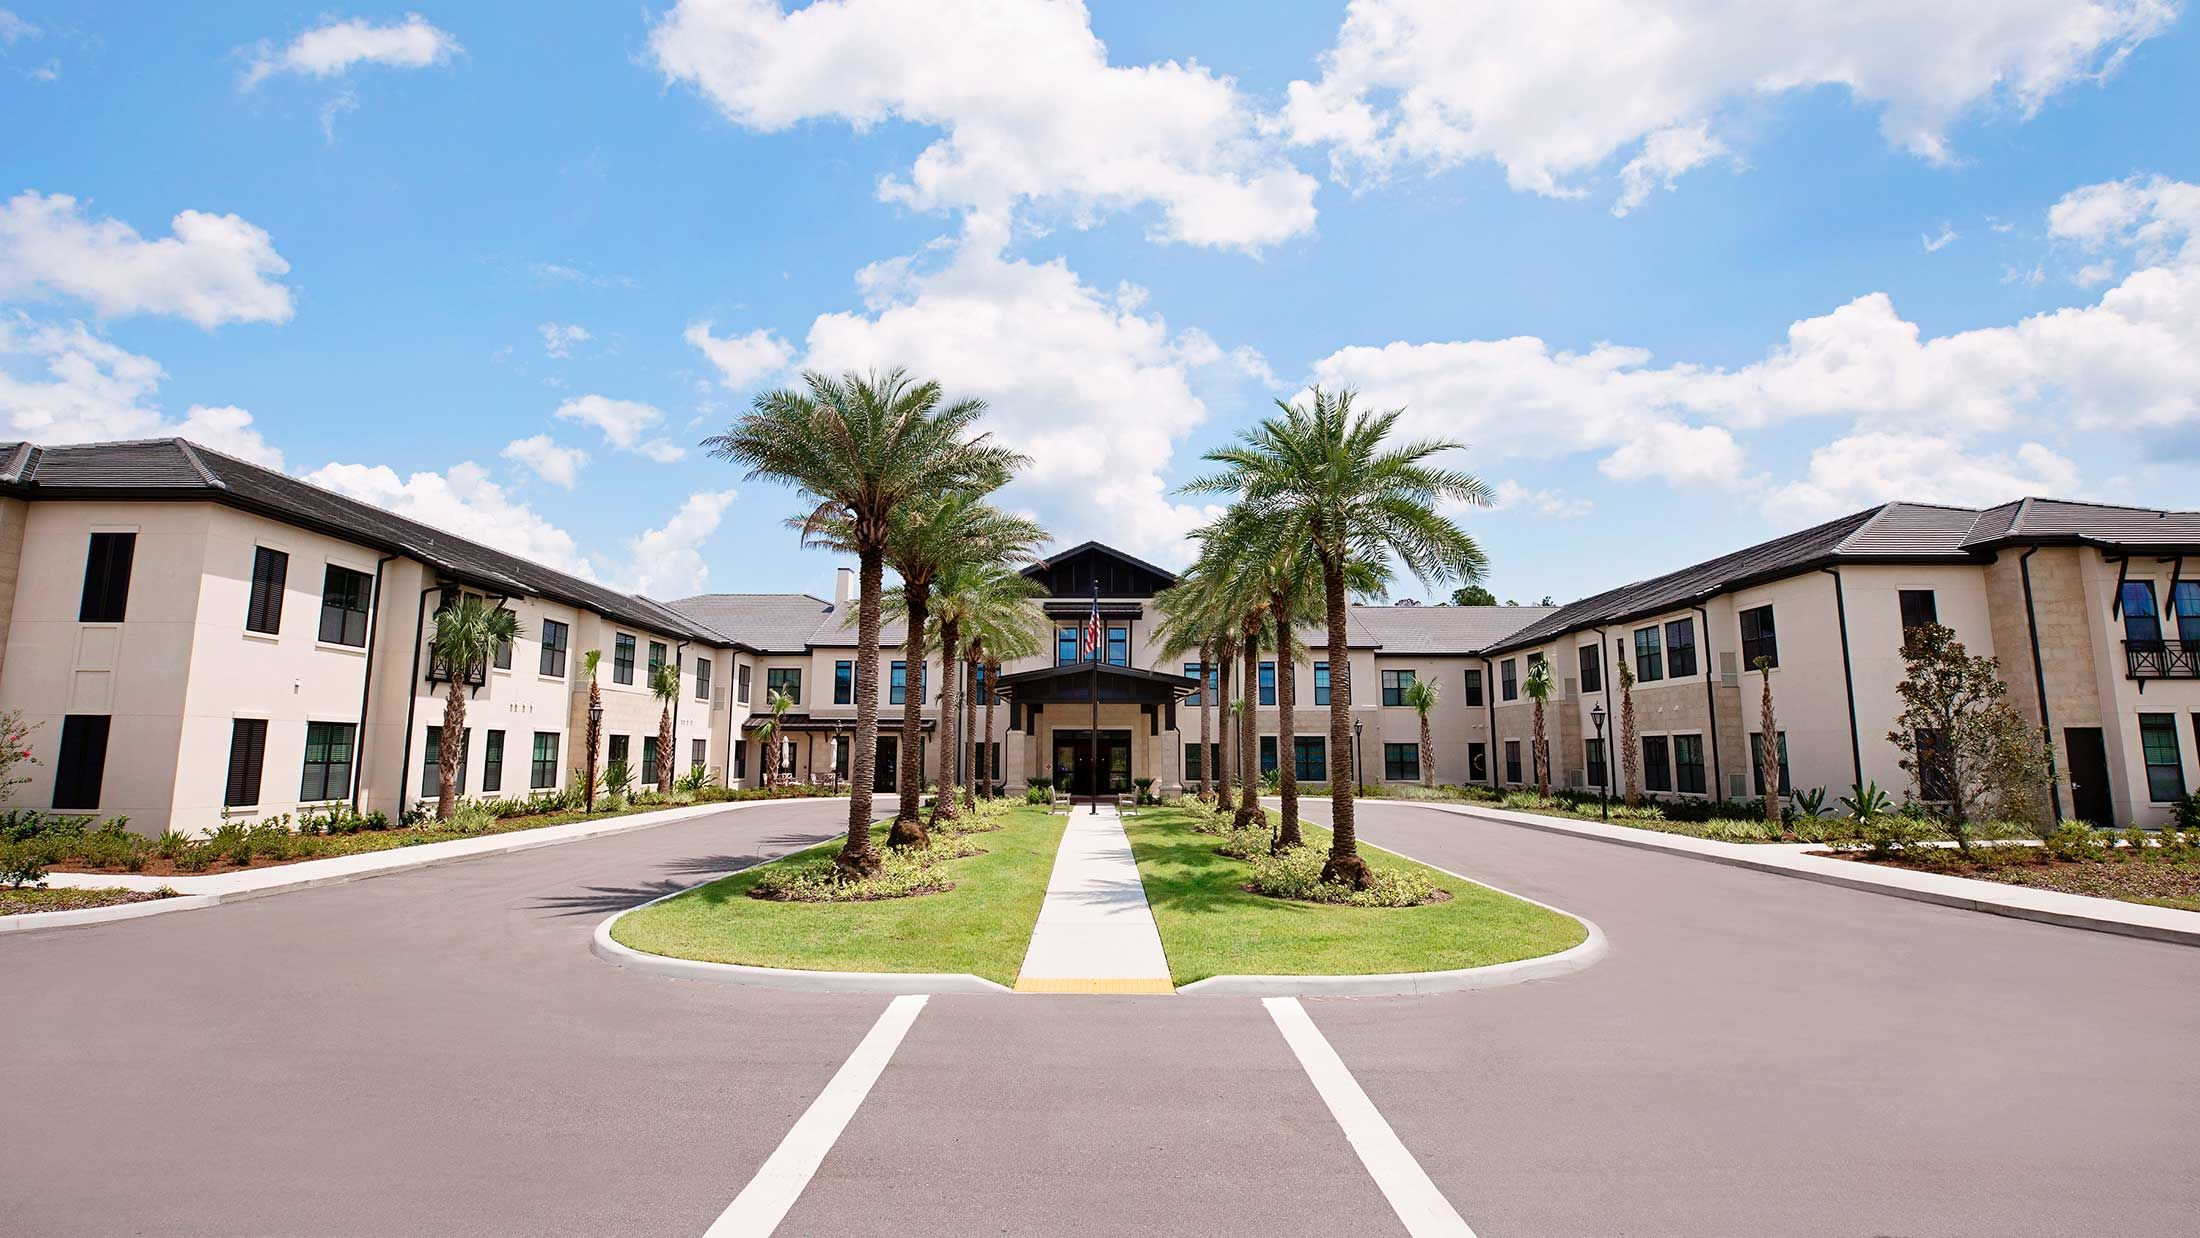 Senior Apartments near Jacksonville